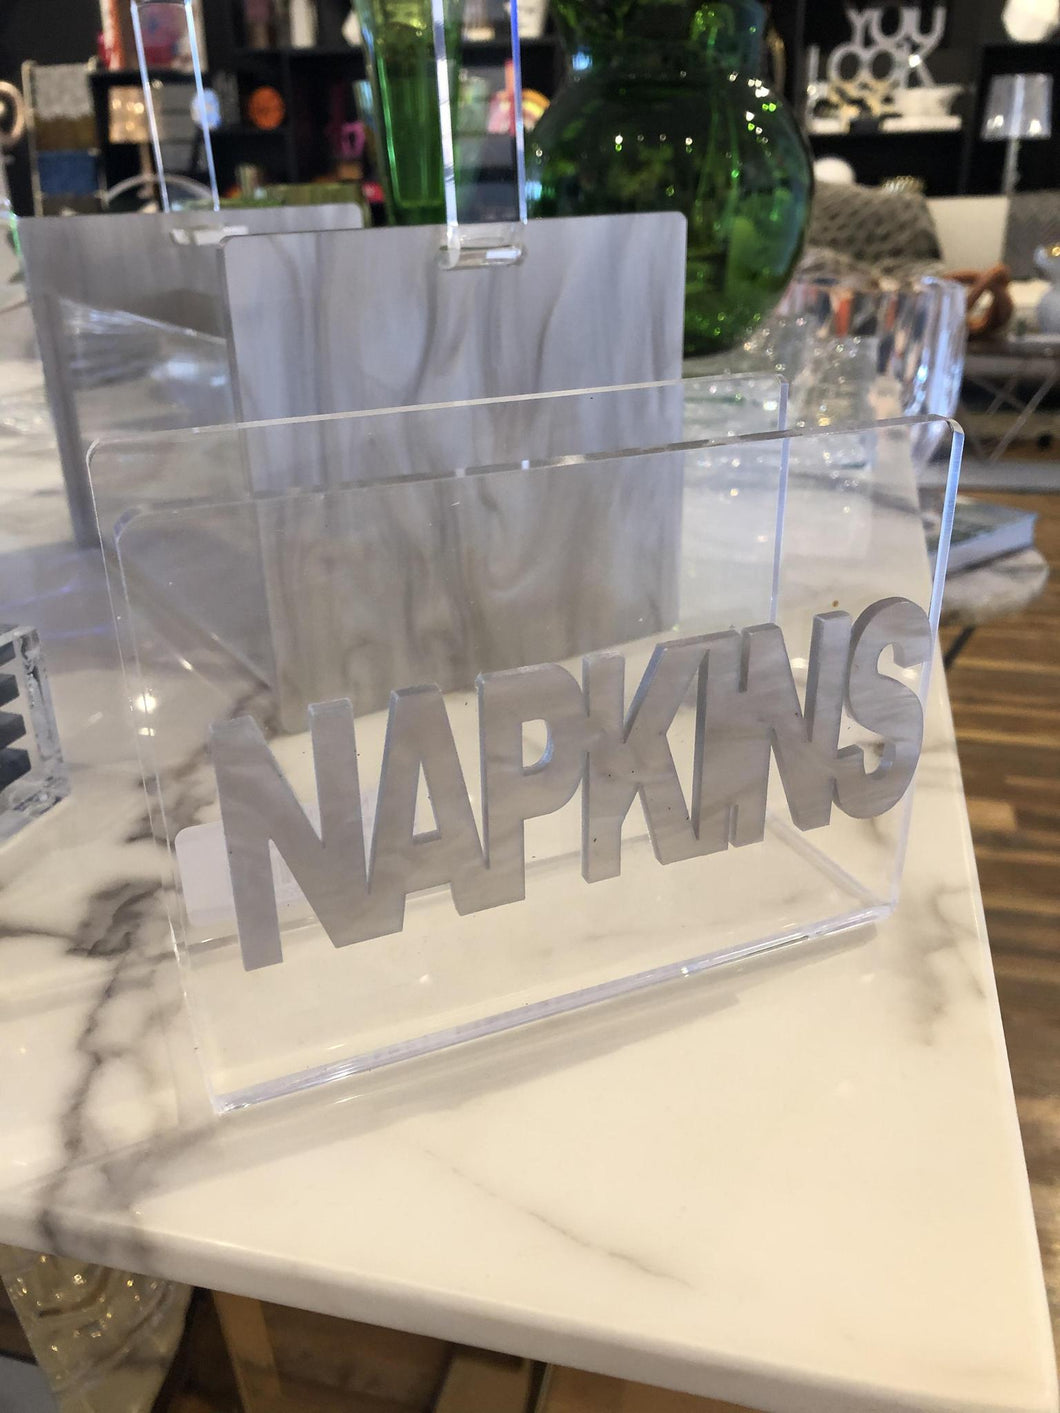 NAPKINS Holder